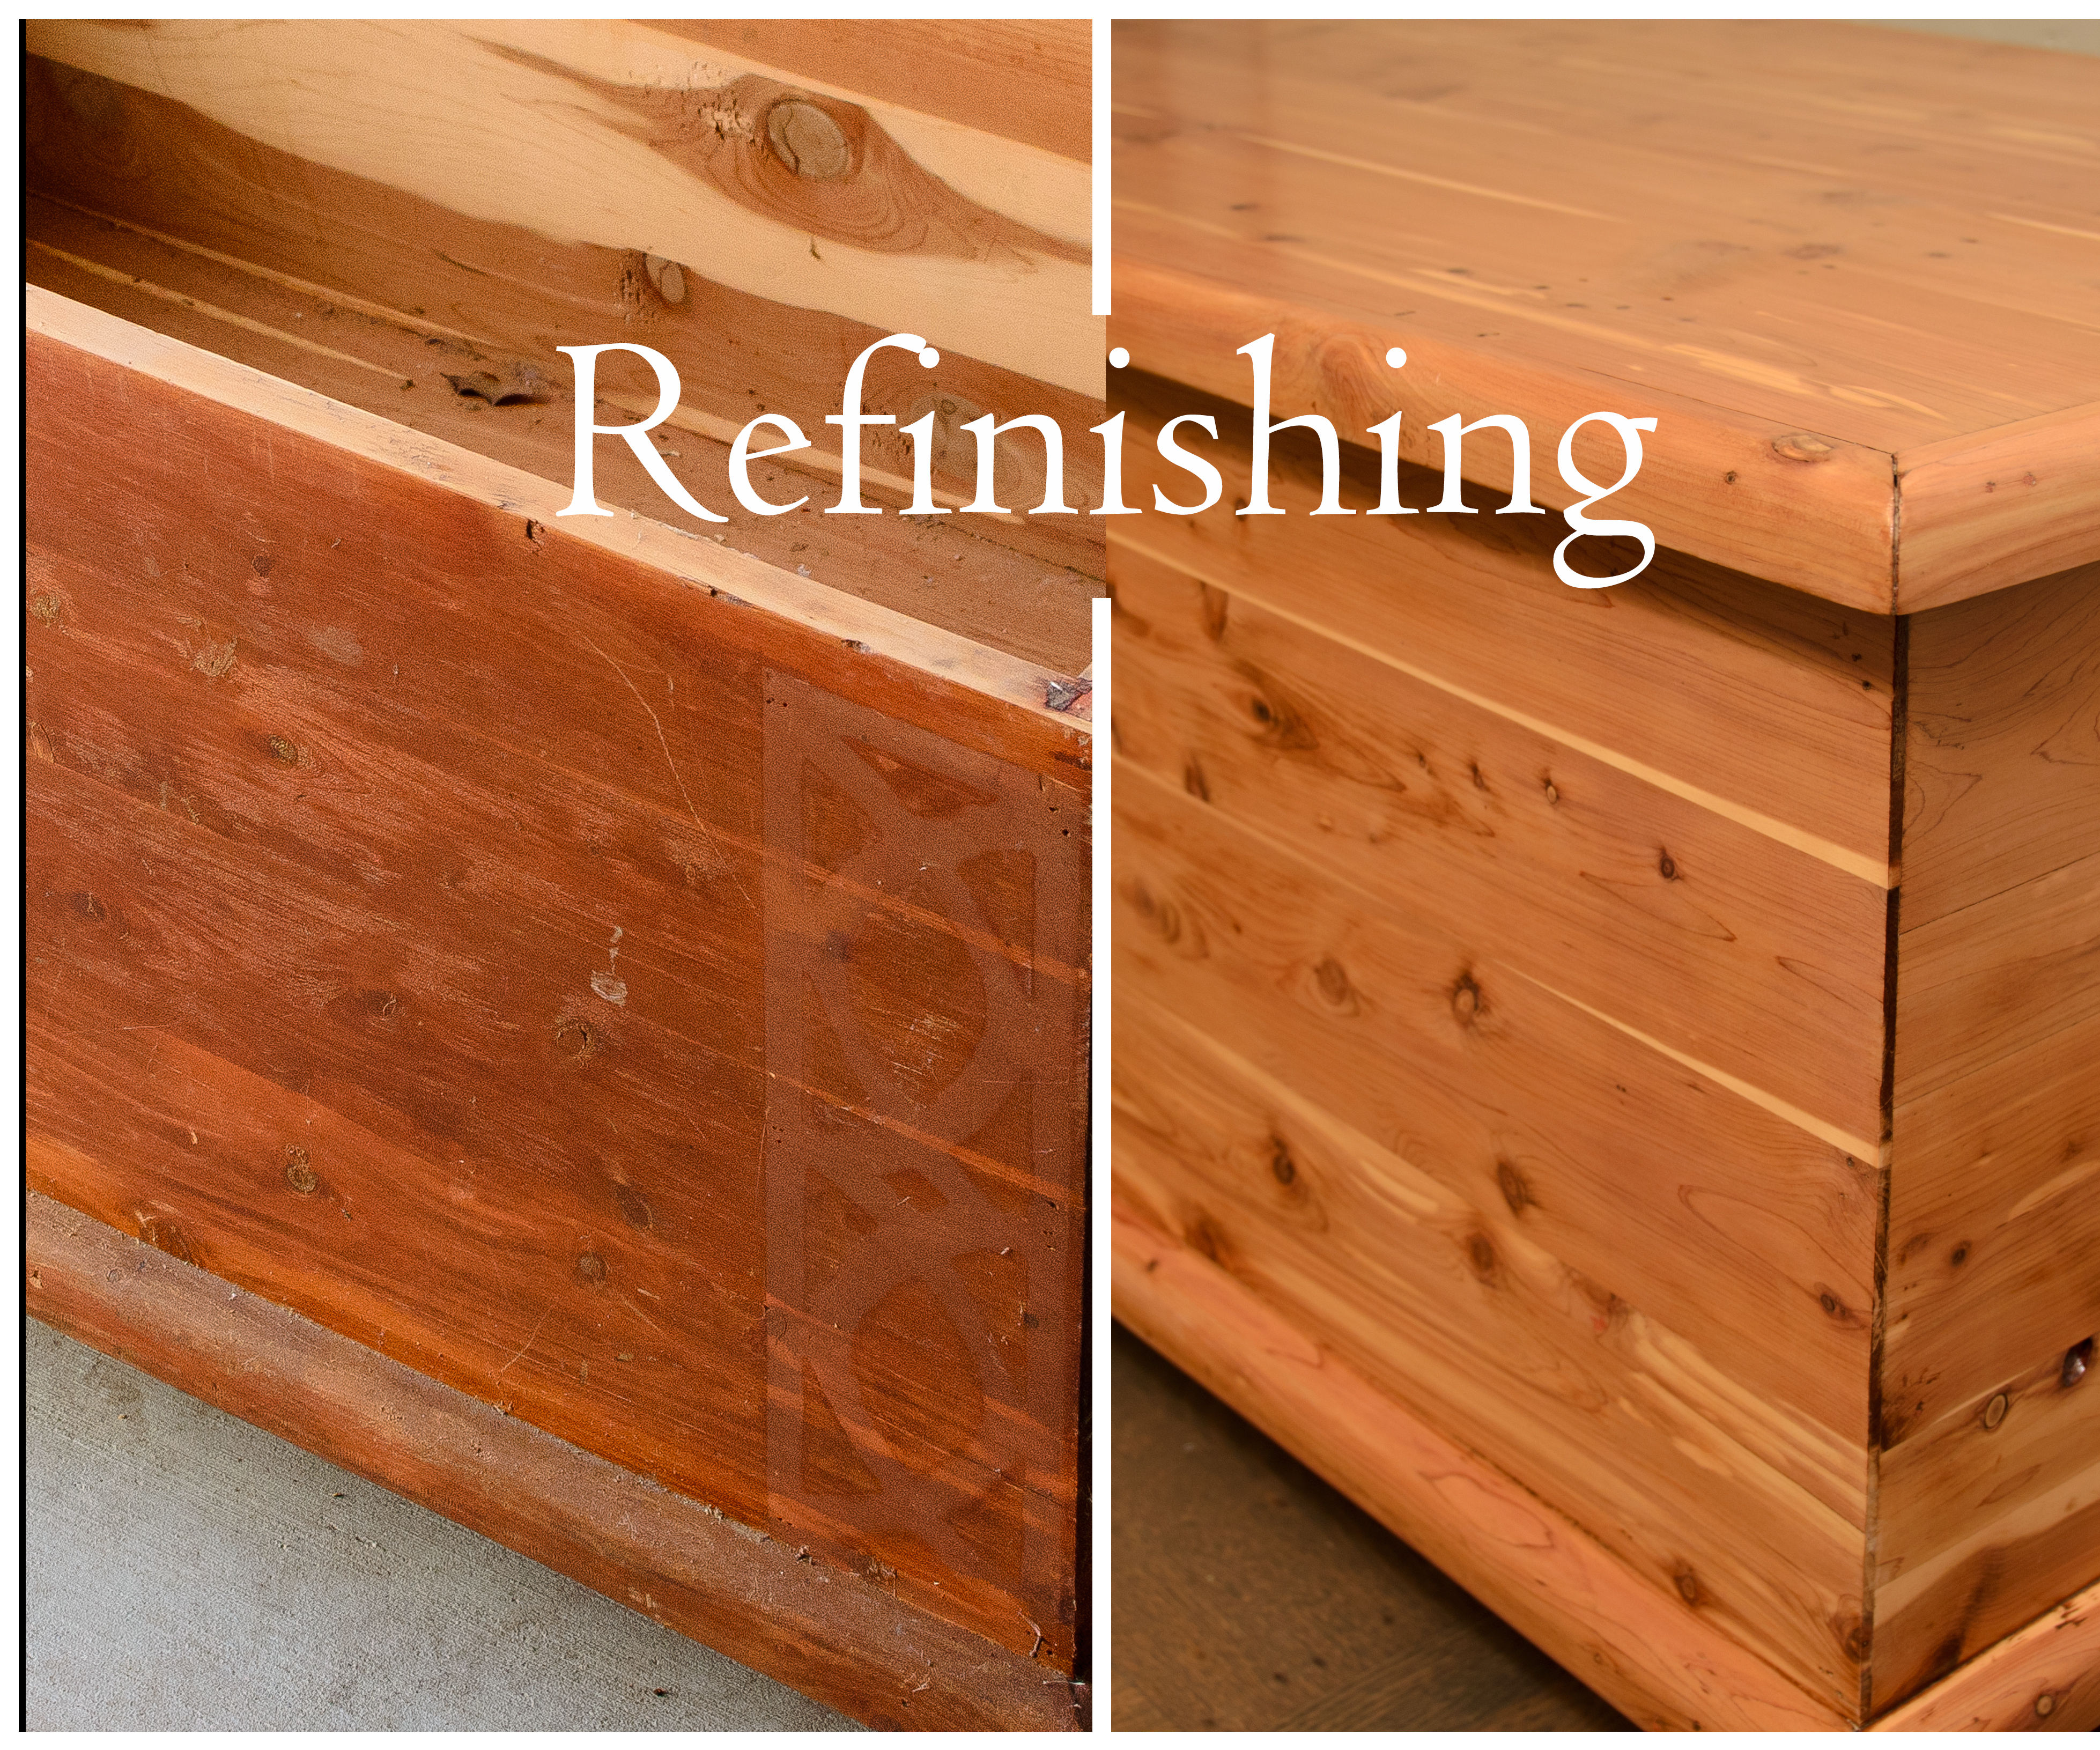 . Refinishing Old Furniture  15 Steps  with Pictures